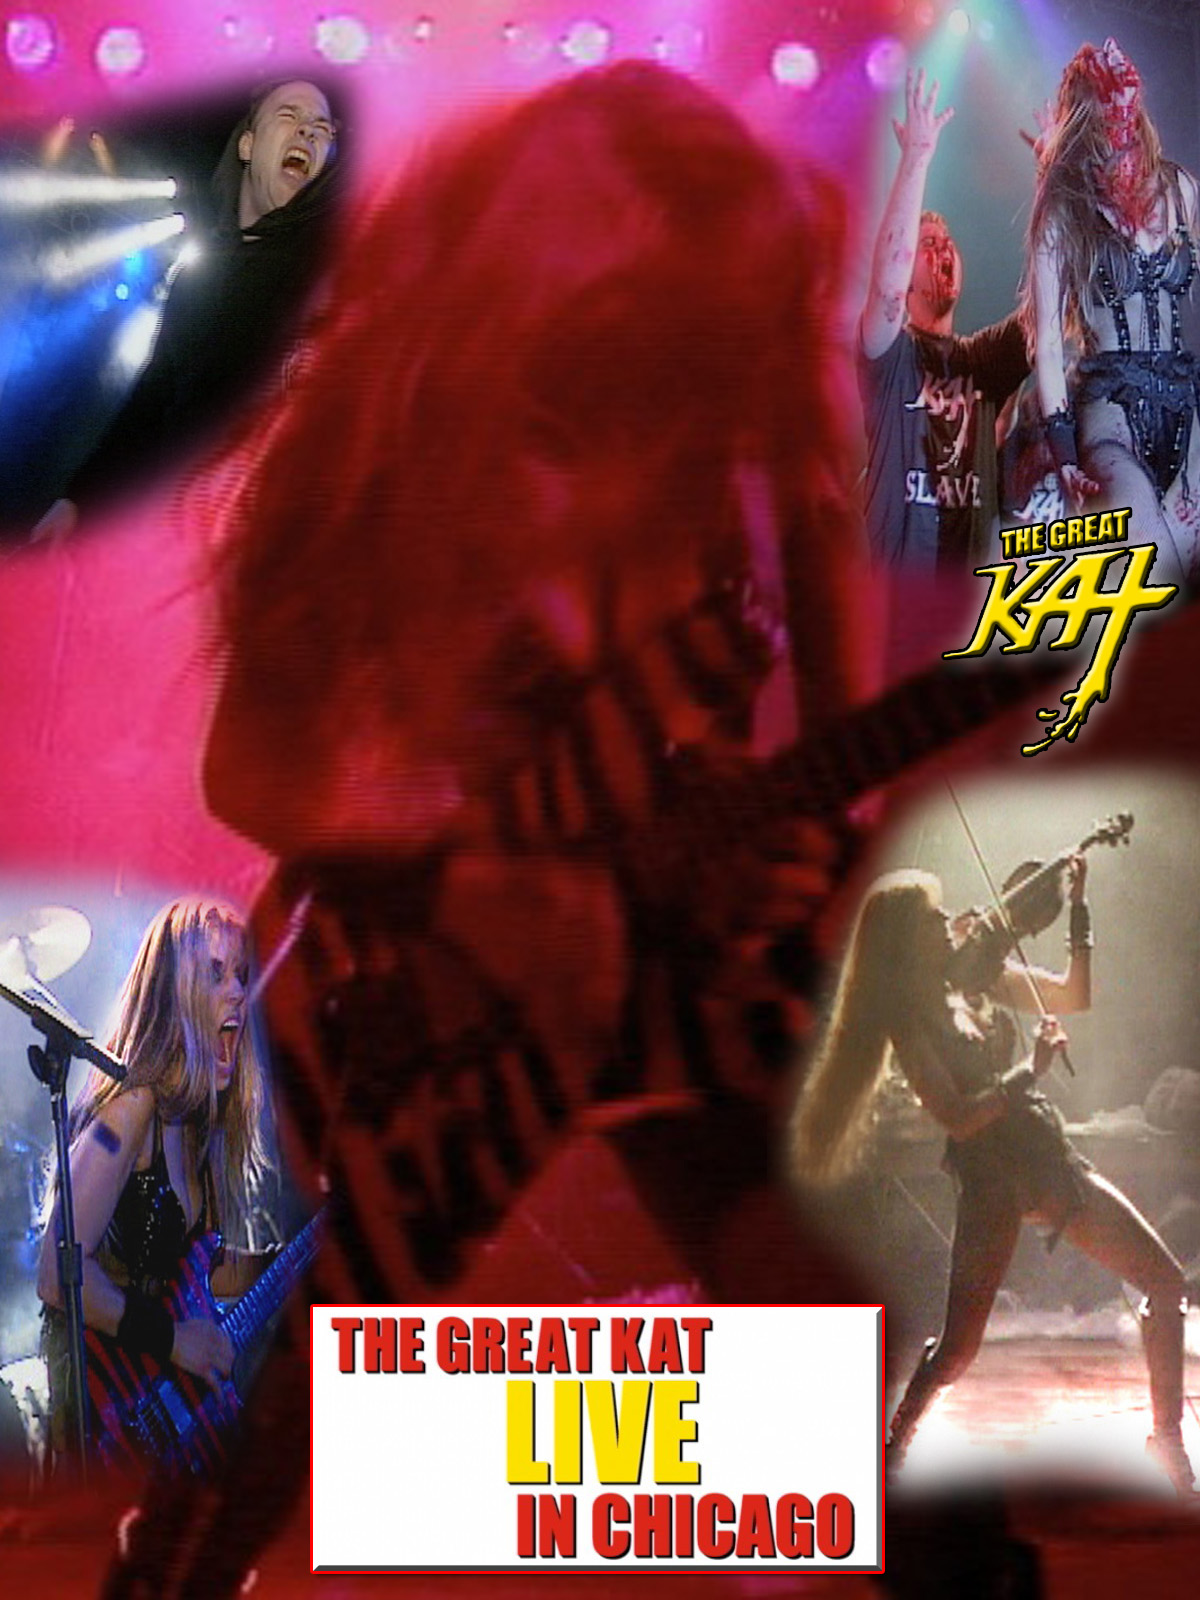 """""""LIVE IN CHICAGO"""" - THE GREAT KAT GUITAR/VIOLIN GODDESS SHREDS LIVE in CHICAGO on TOUR! MUSIC VIDEO PREMIERES on AMAZON PRIME!"""